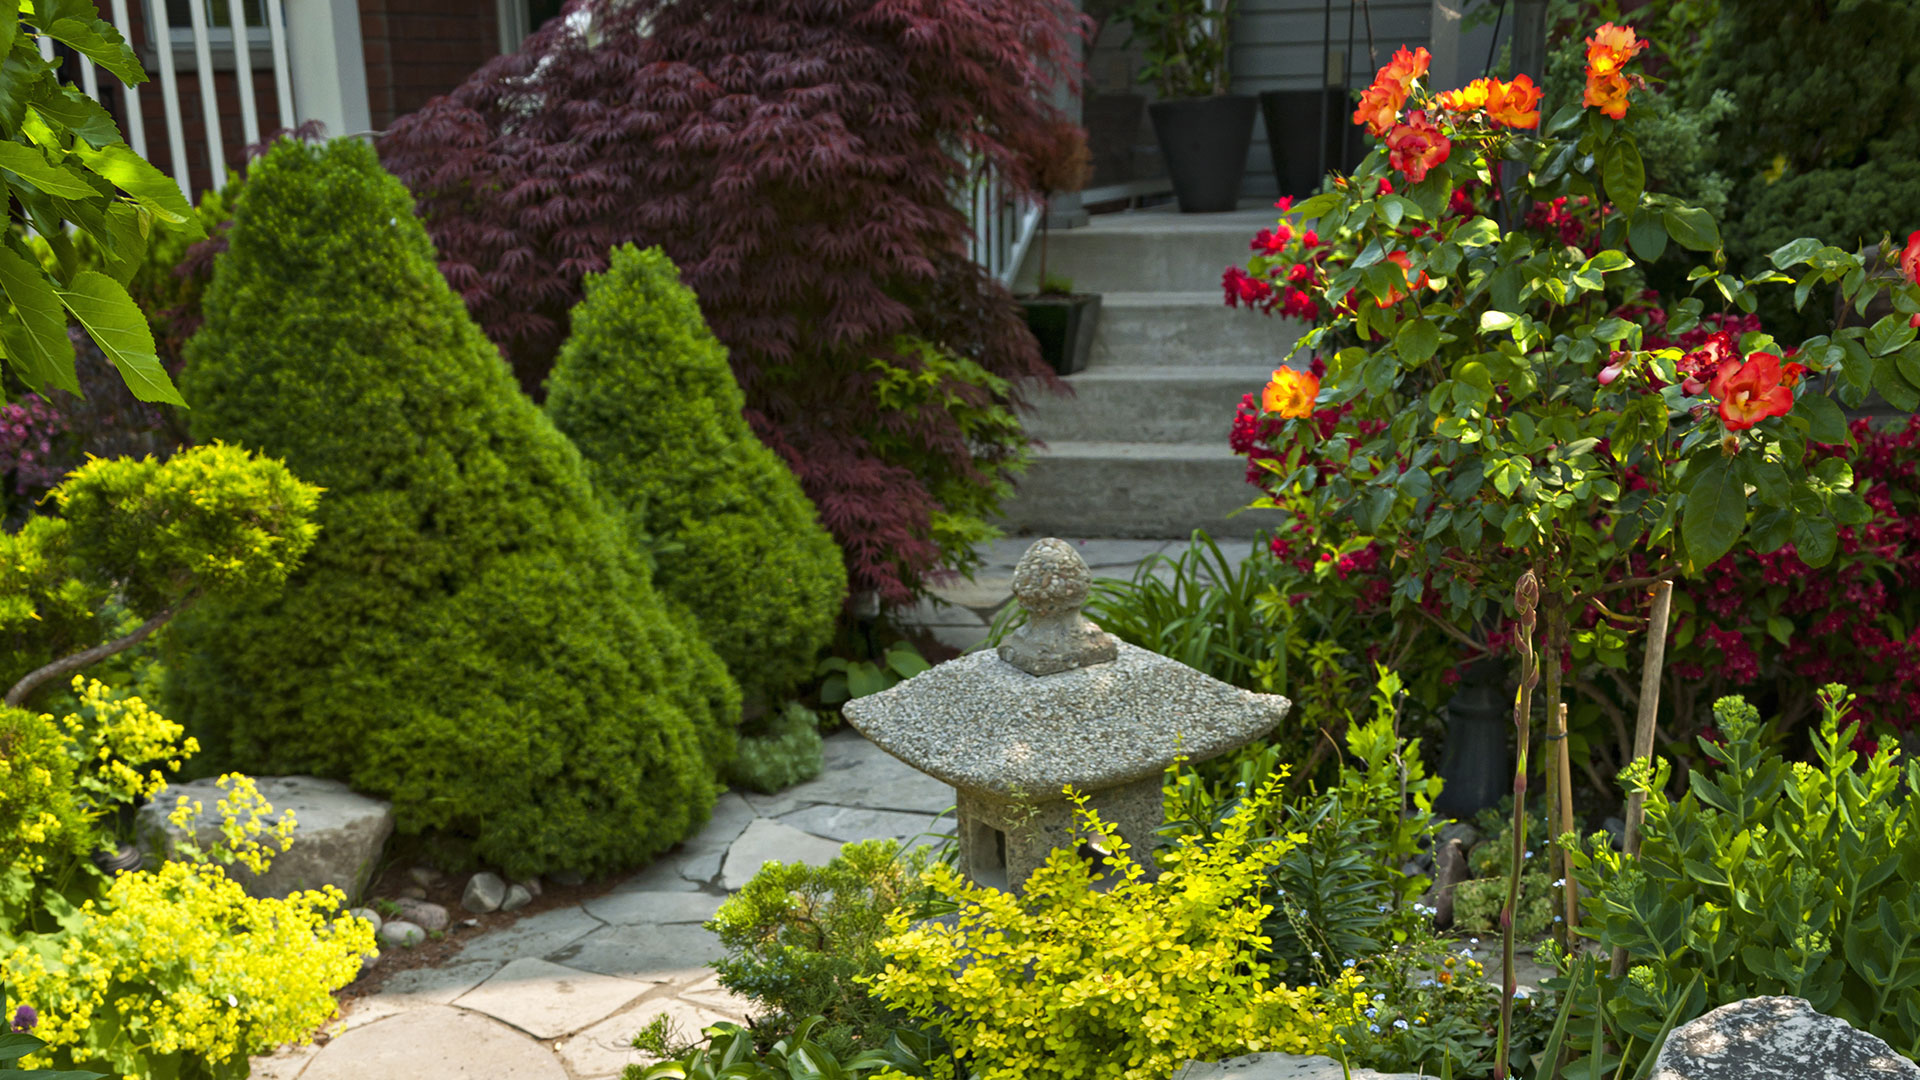 Swansea Landscaping: Lawn Care And Landscaping Specialists In Belleville,  Fairview Heights And Swansea